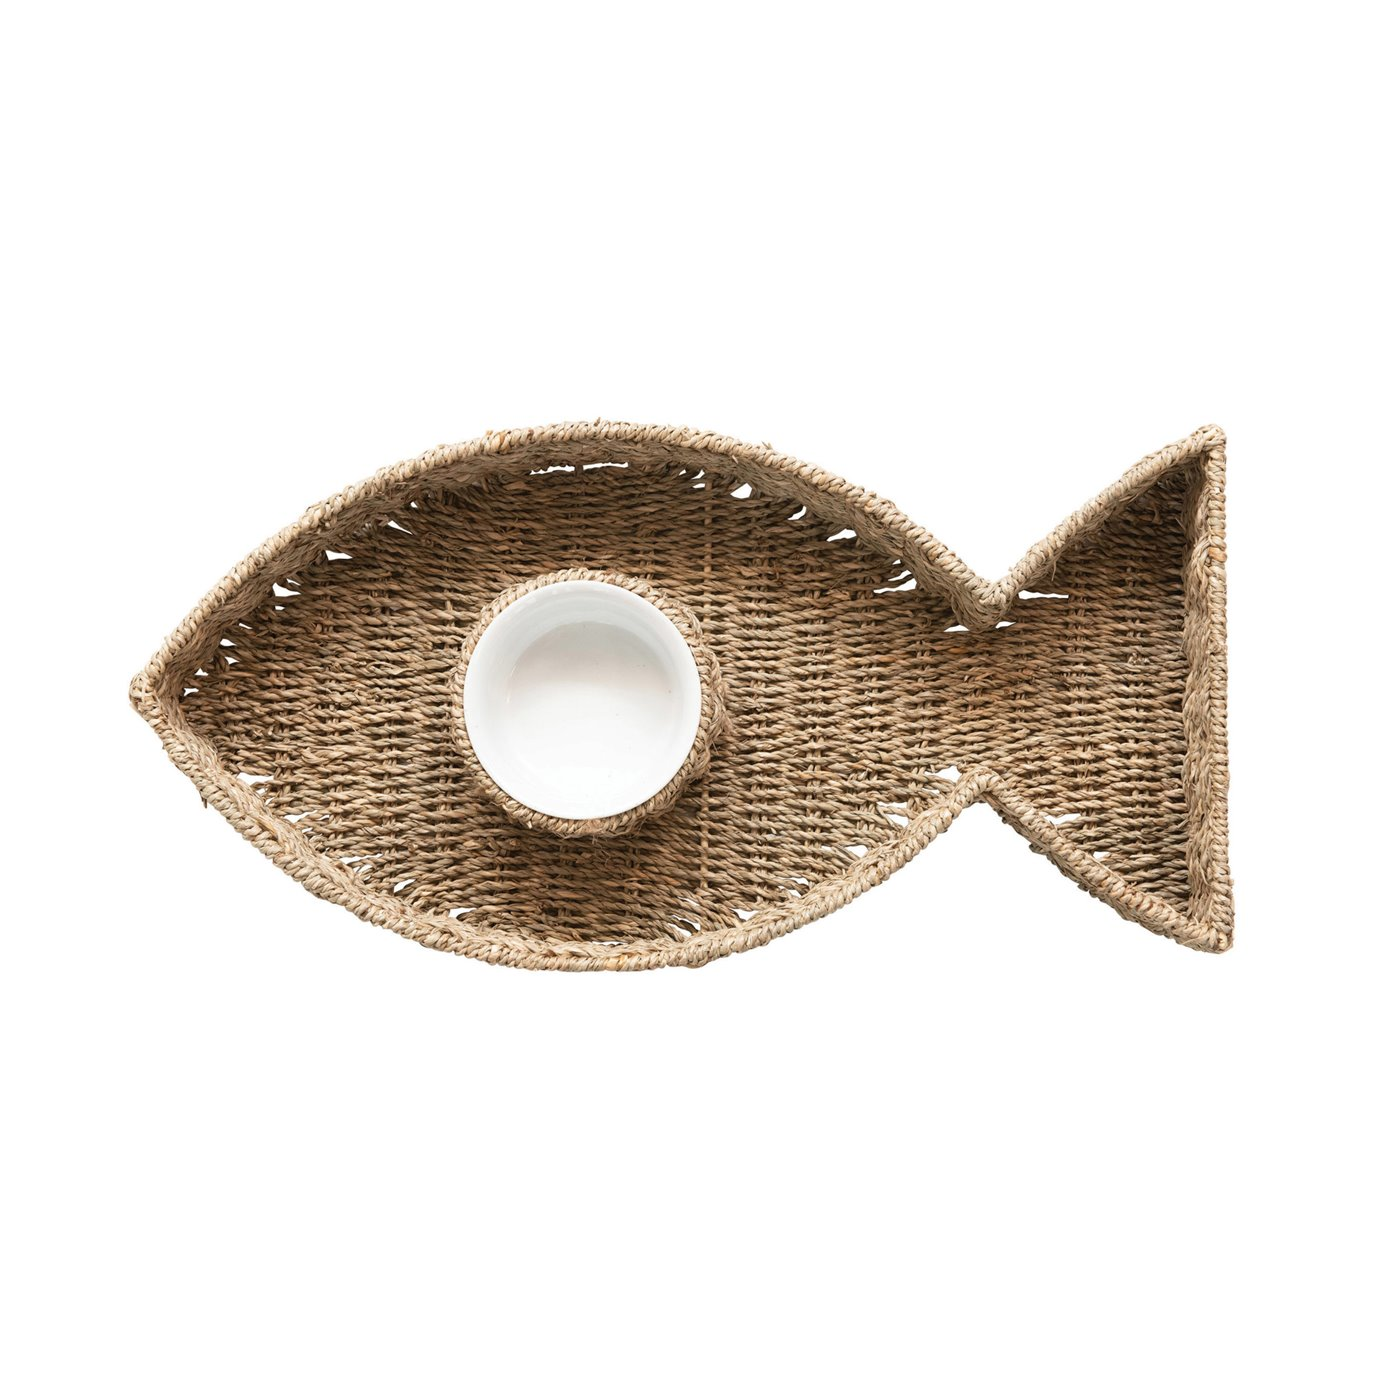 Hand-Woven Seagrass Fish Shaped Chip & Dip with 8oz. Ceramic Bowl, Set of 2